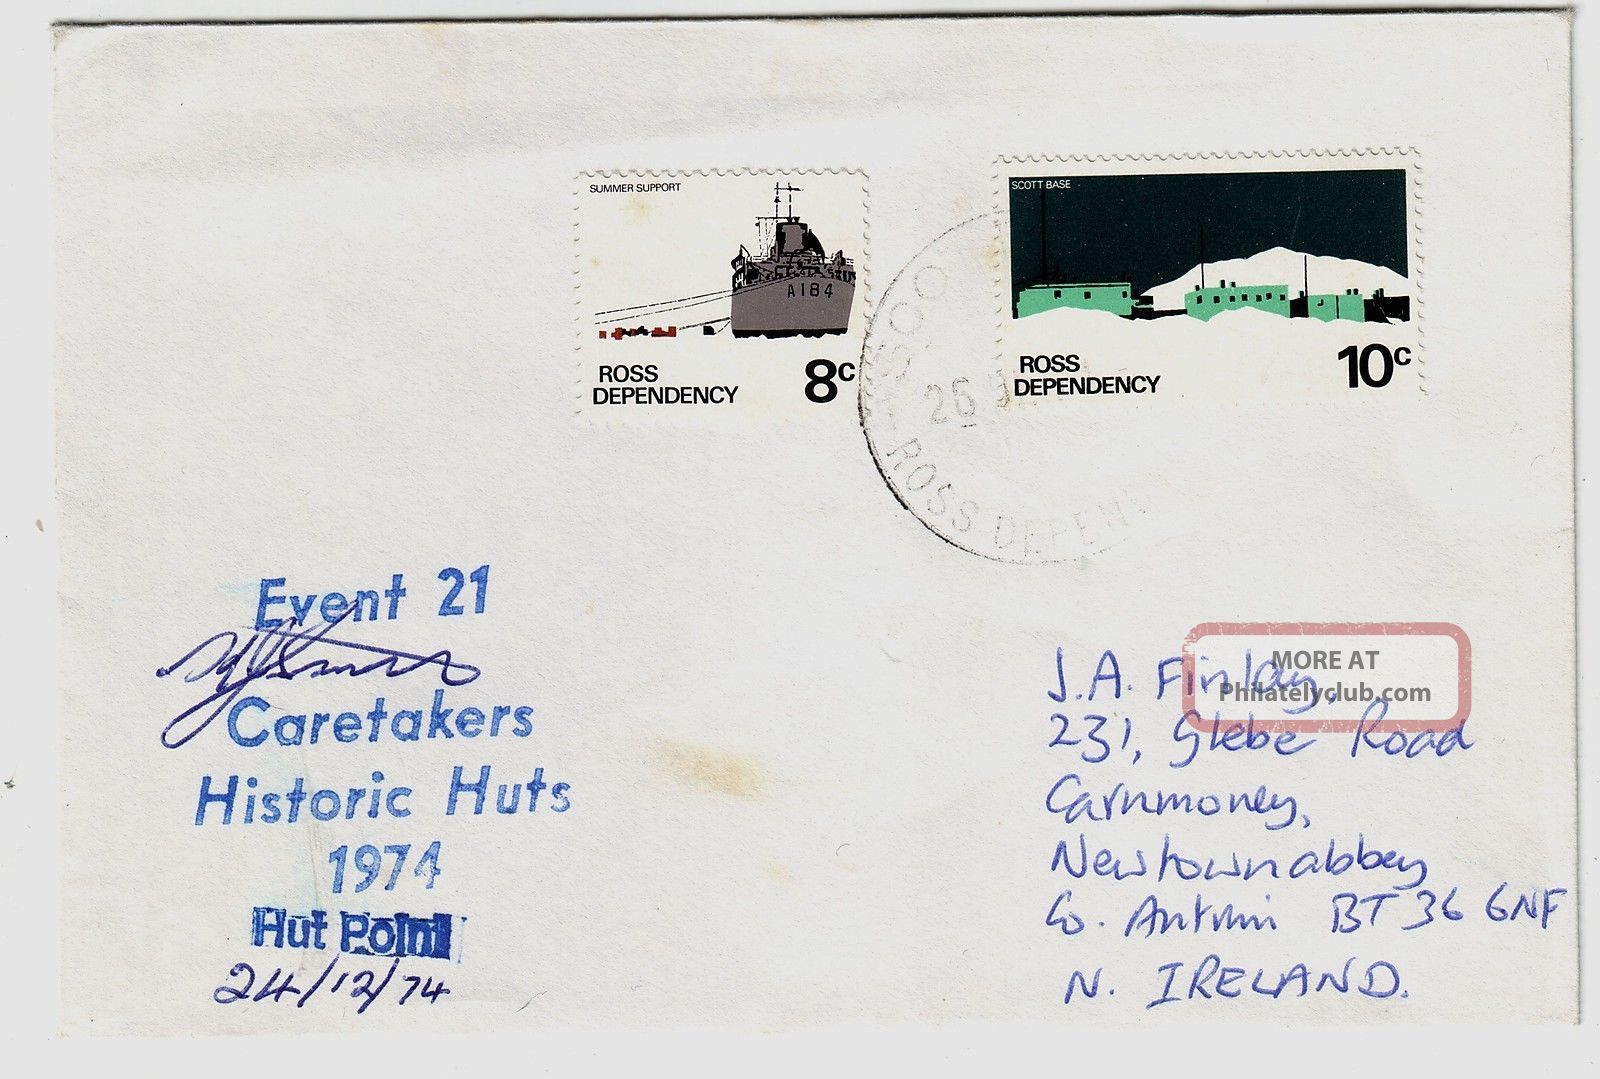 Ross Dependency 1974 Antarctic Histric Huts Restoration Official Signed Cover Worldwide photo